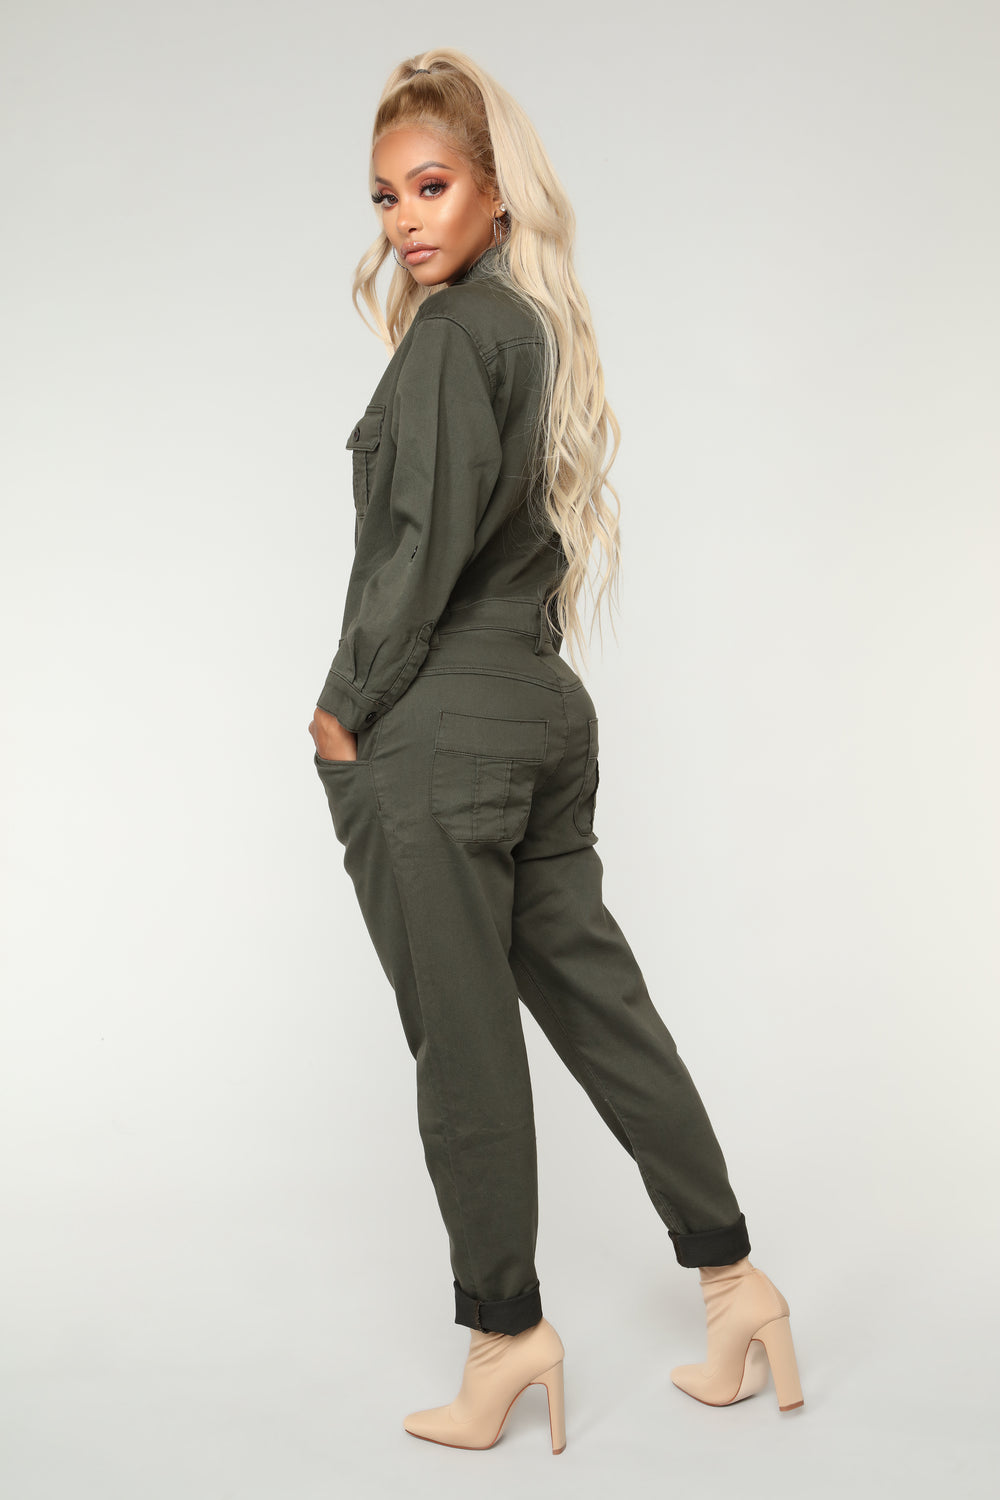 Working Hard Jumpsuit - Olive